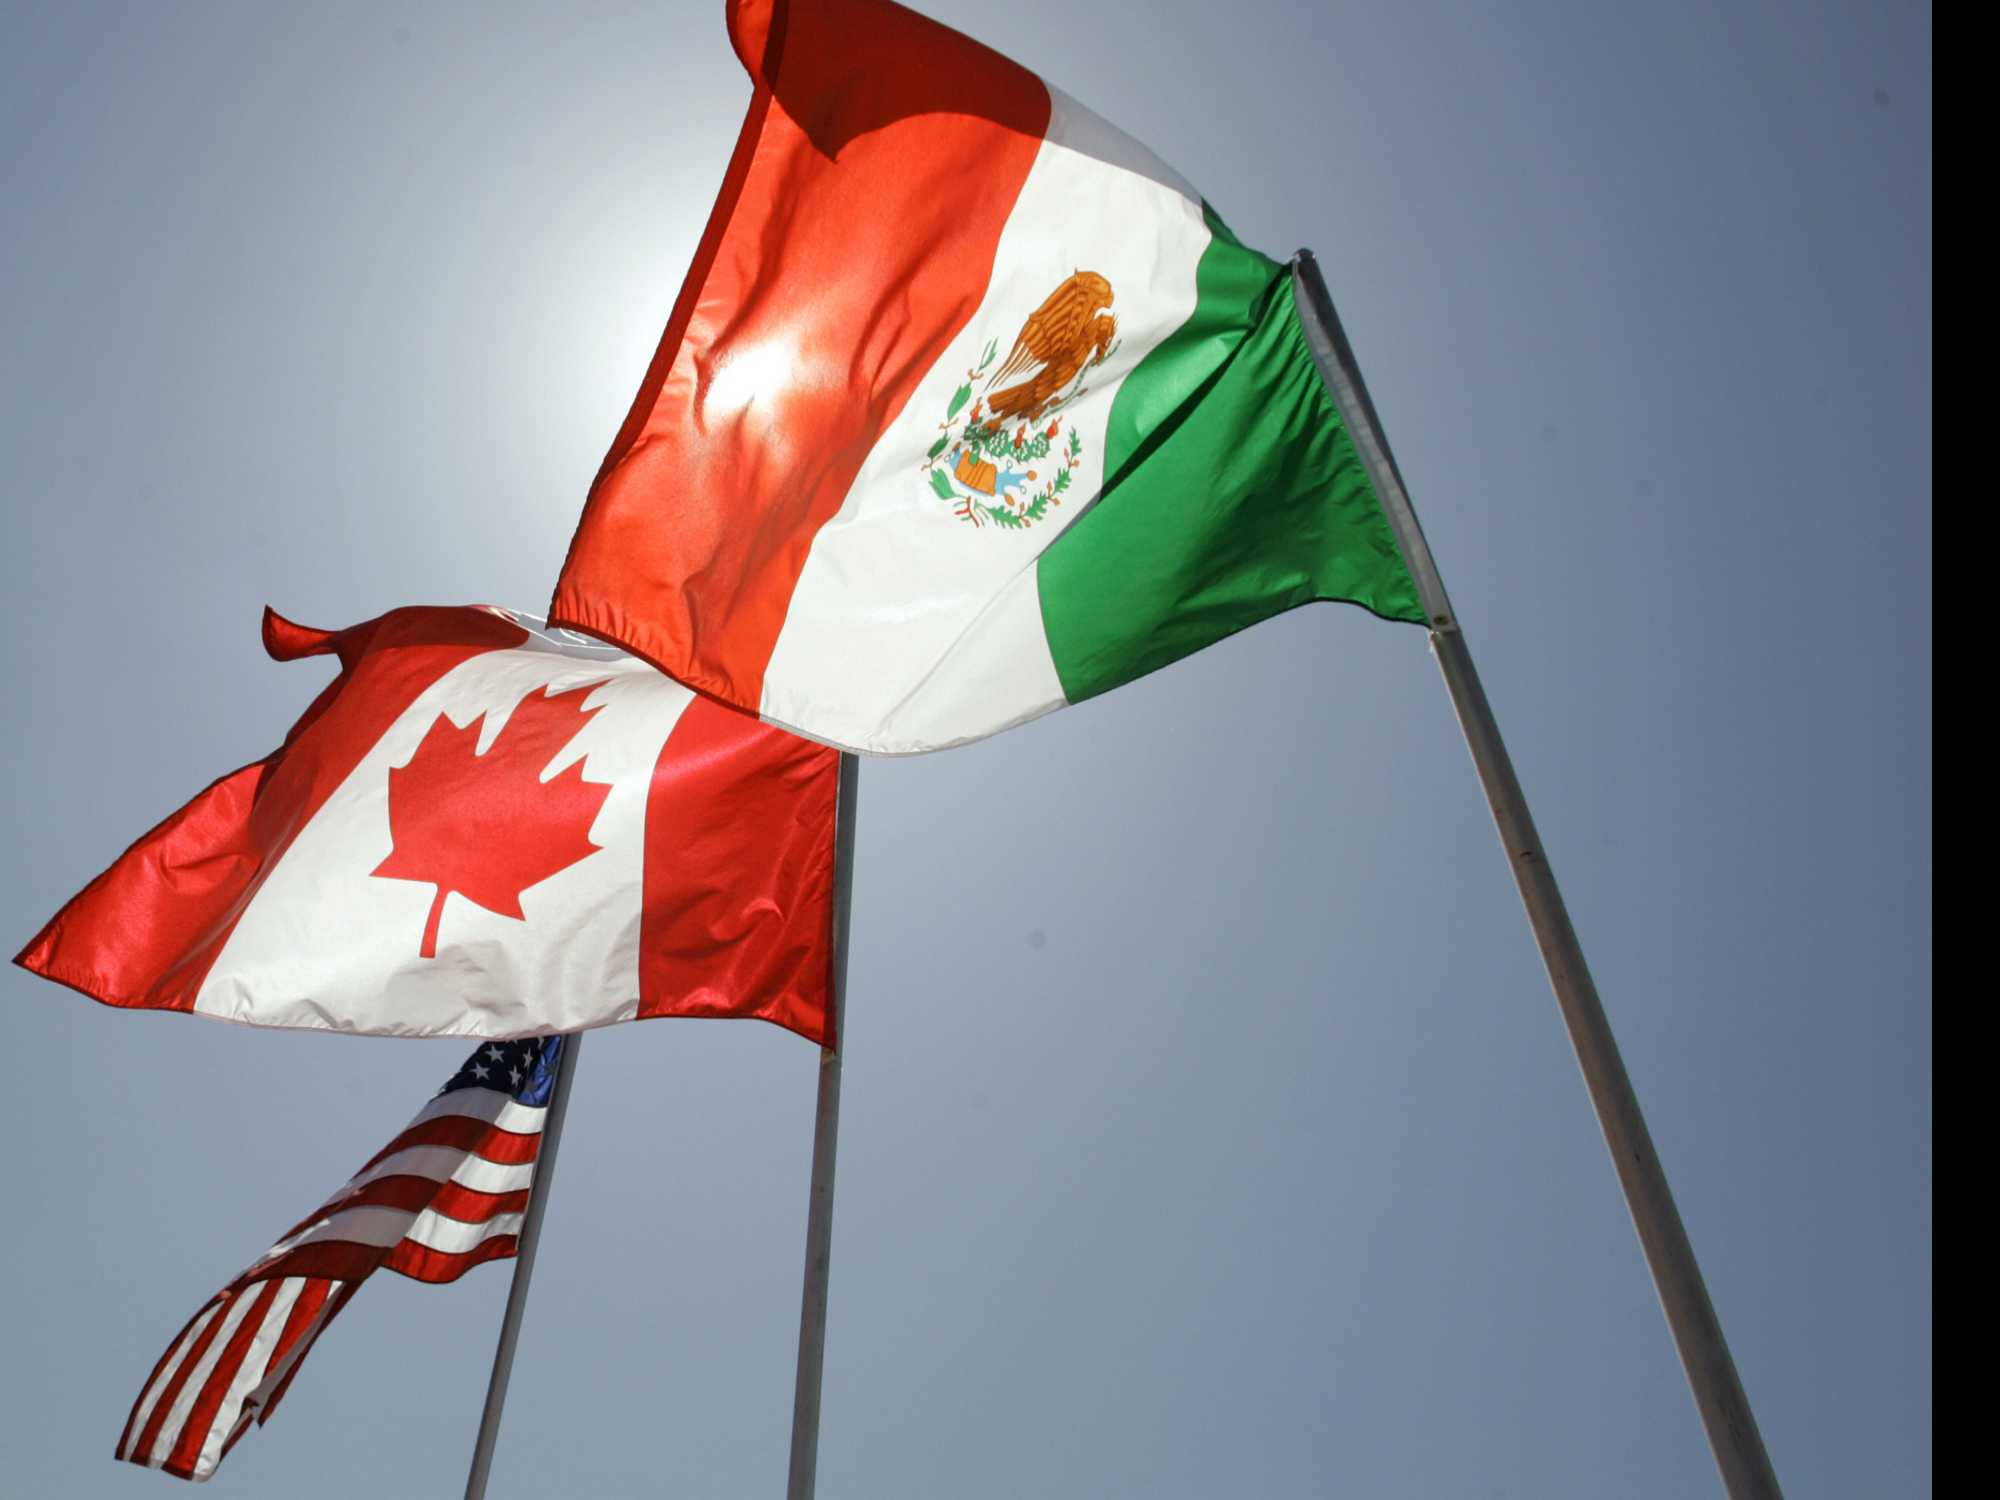 Canadian Retailers See Potential NAFTA Change As Threat